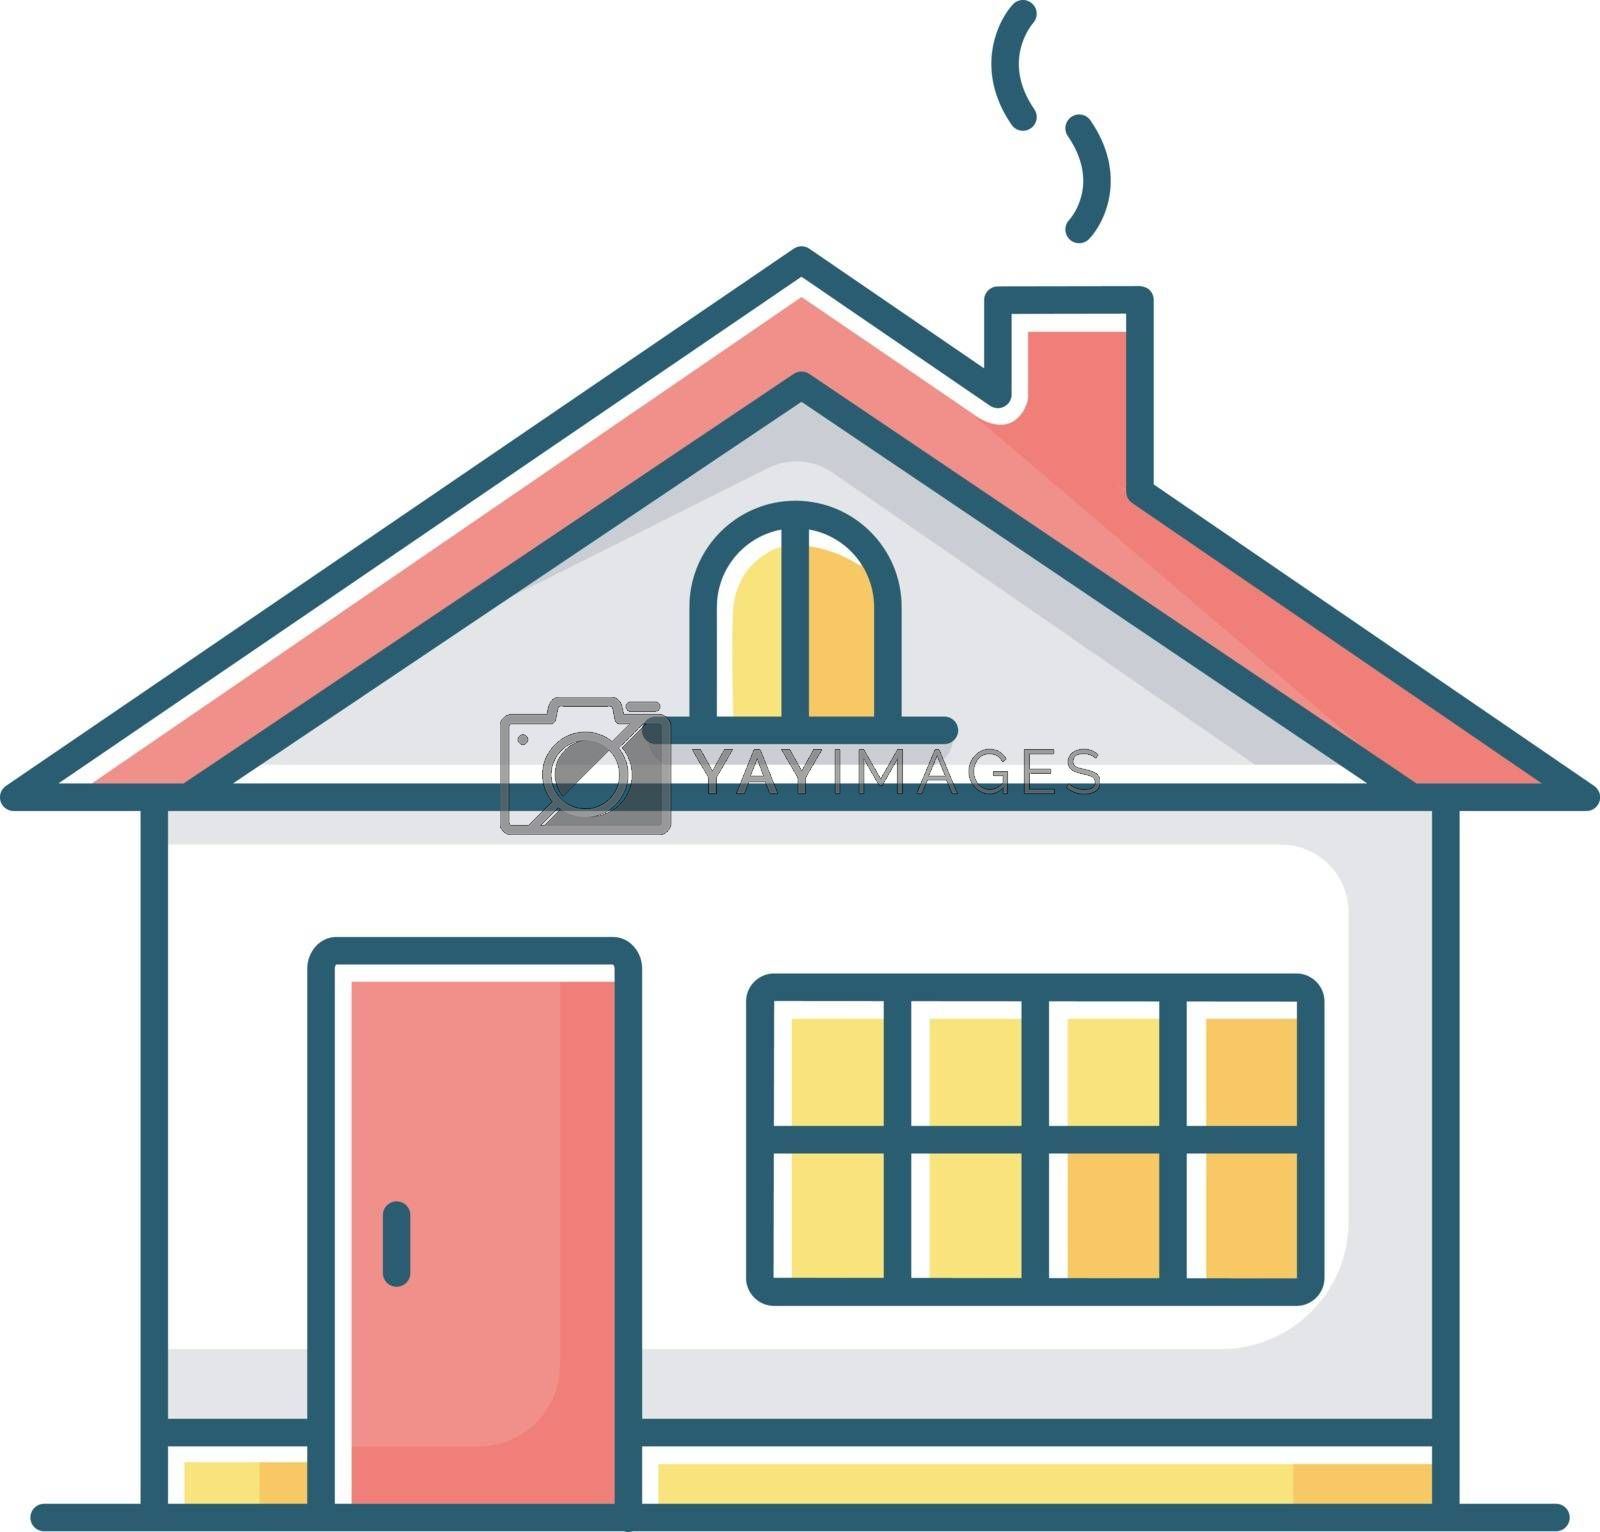 House RGB color icon. Residential home exterior. Real estate for renting. Dwelling building in suburban area. Household property. Mansion ownership. Village neighborhood. Isolated vector illustration